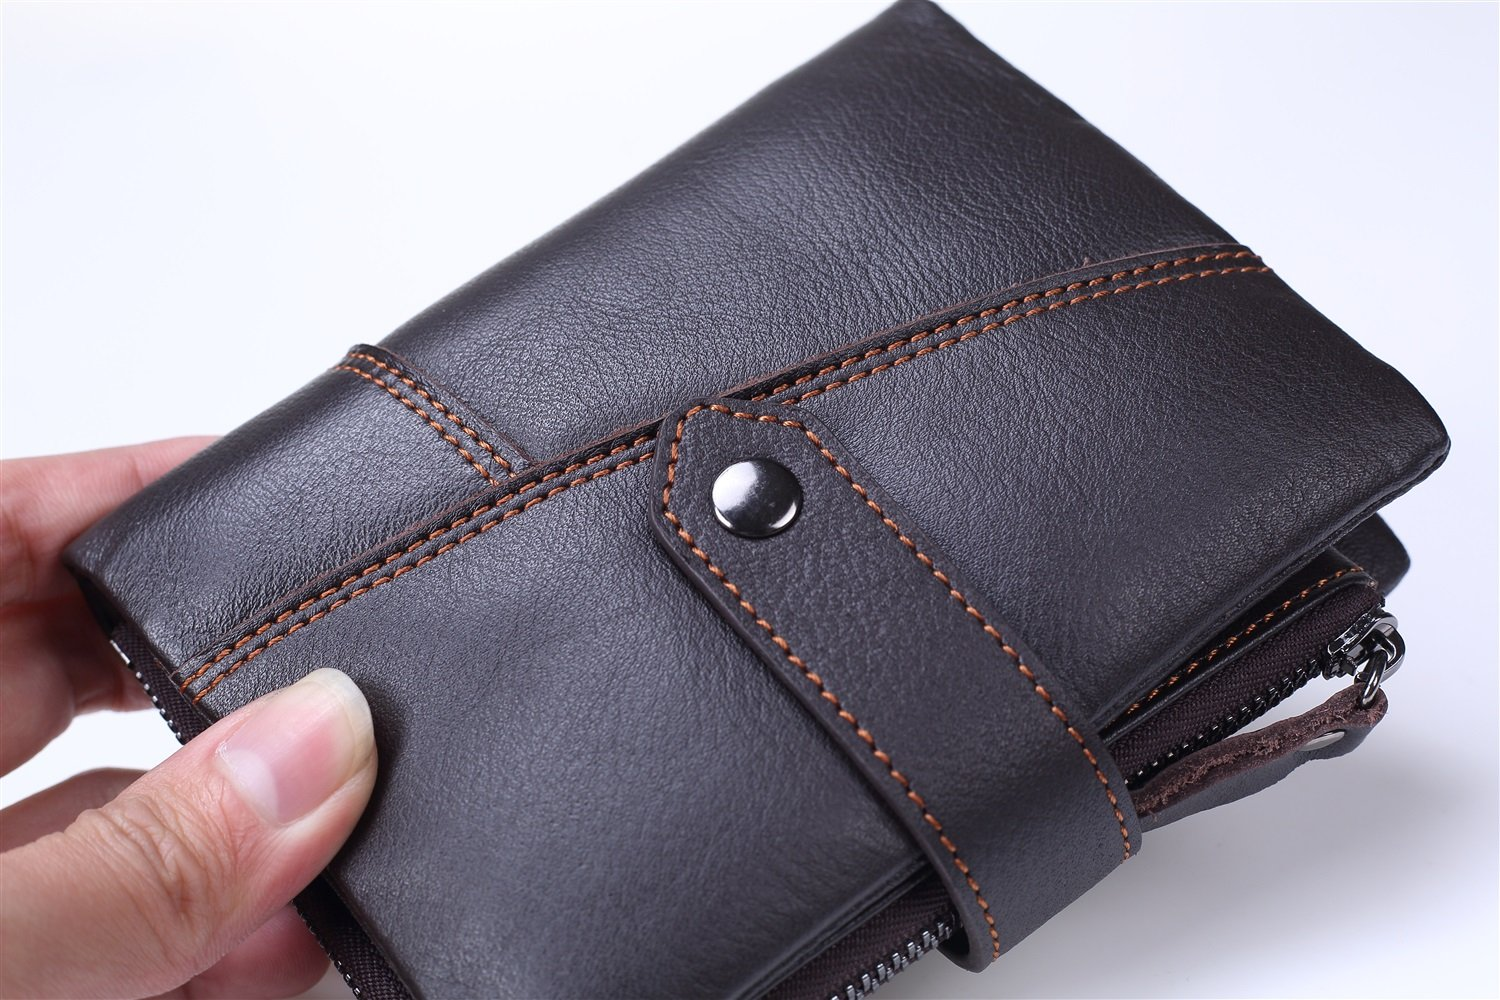 XINXI-MAO Cozy Mens Wallet Short The First Layer of Leather Handbag Zipper Change Holder Vertical Three-fold Wallet Backpack Color : Brown, Size : S